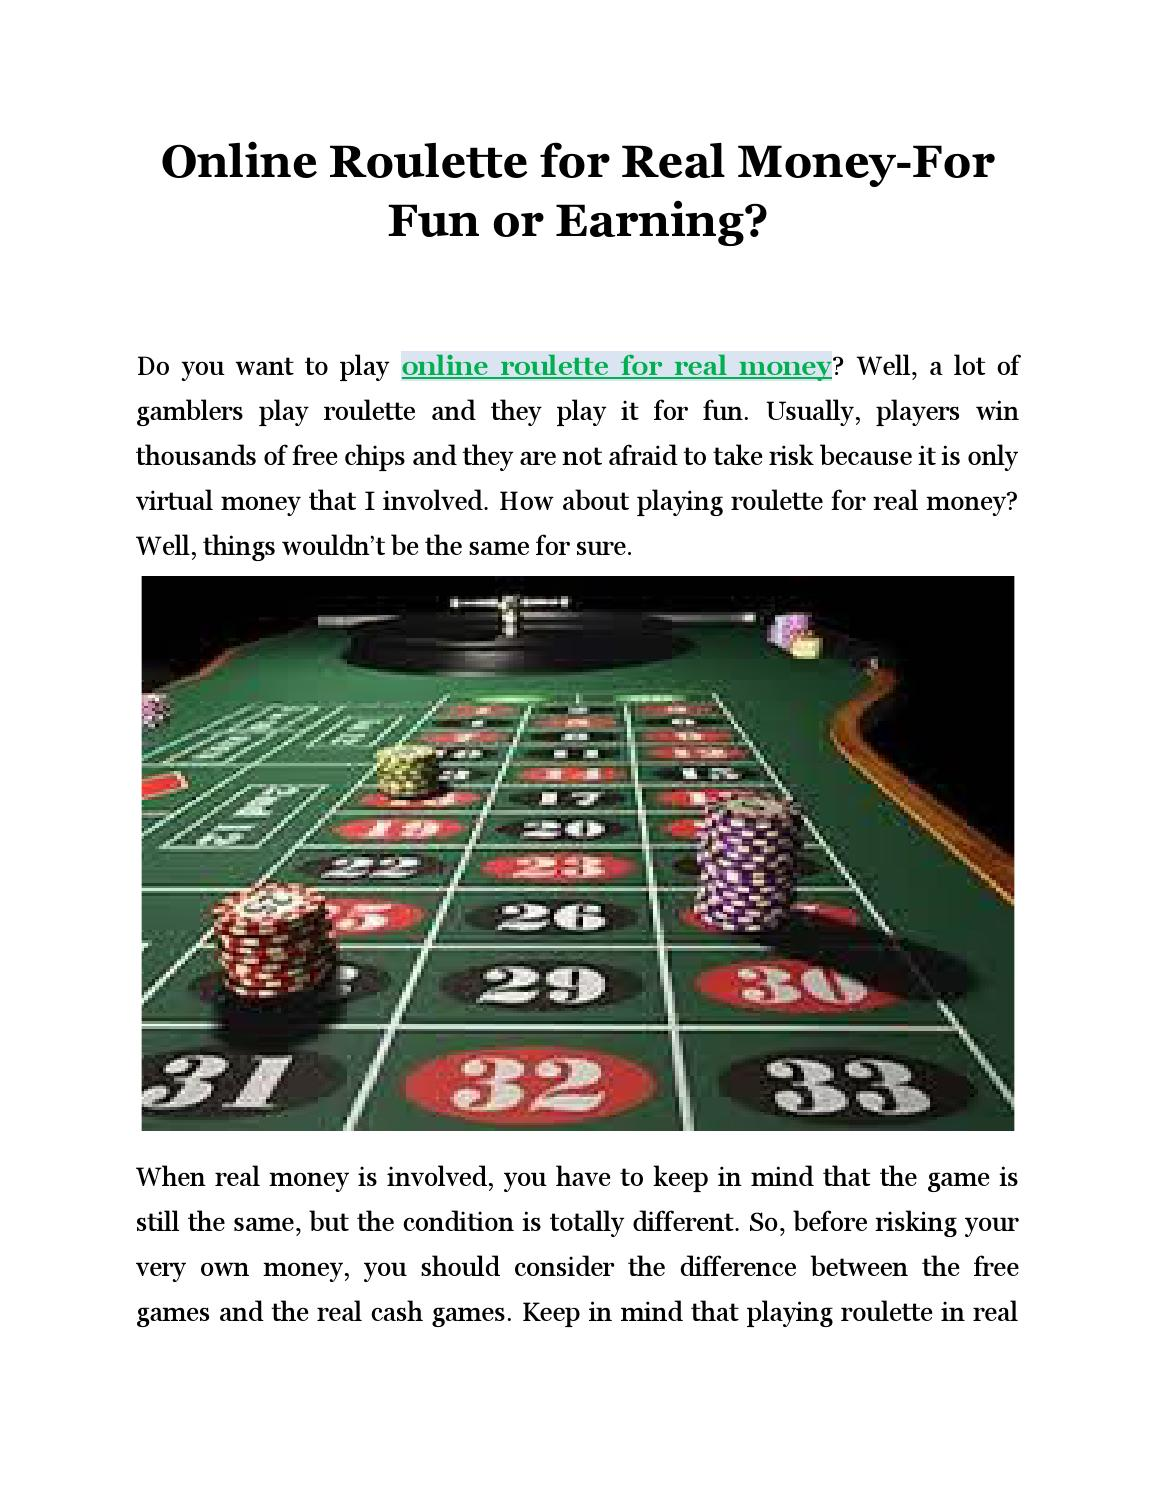 Play roulette for real money